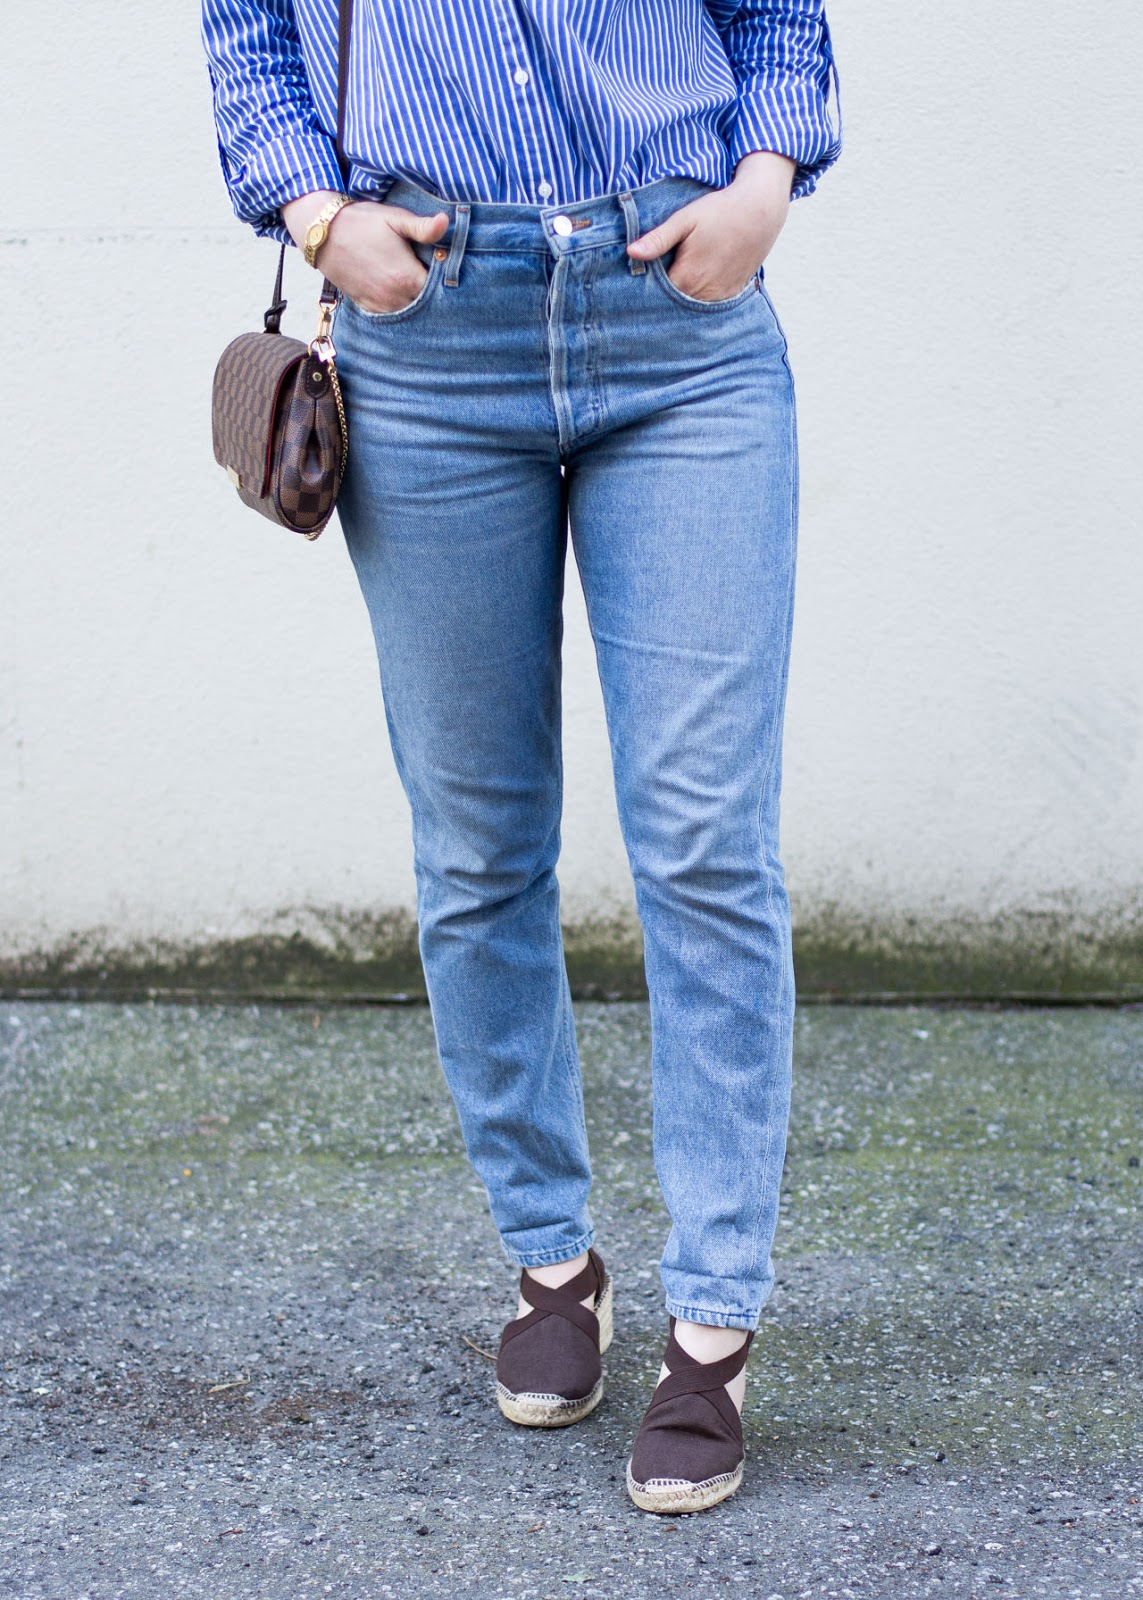 Vancouver Style blog - Summer outfit tips - AGOLDE denim - Louis Vuitton bag